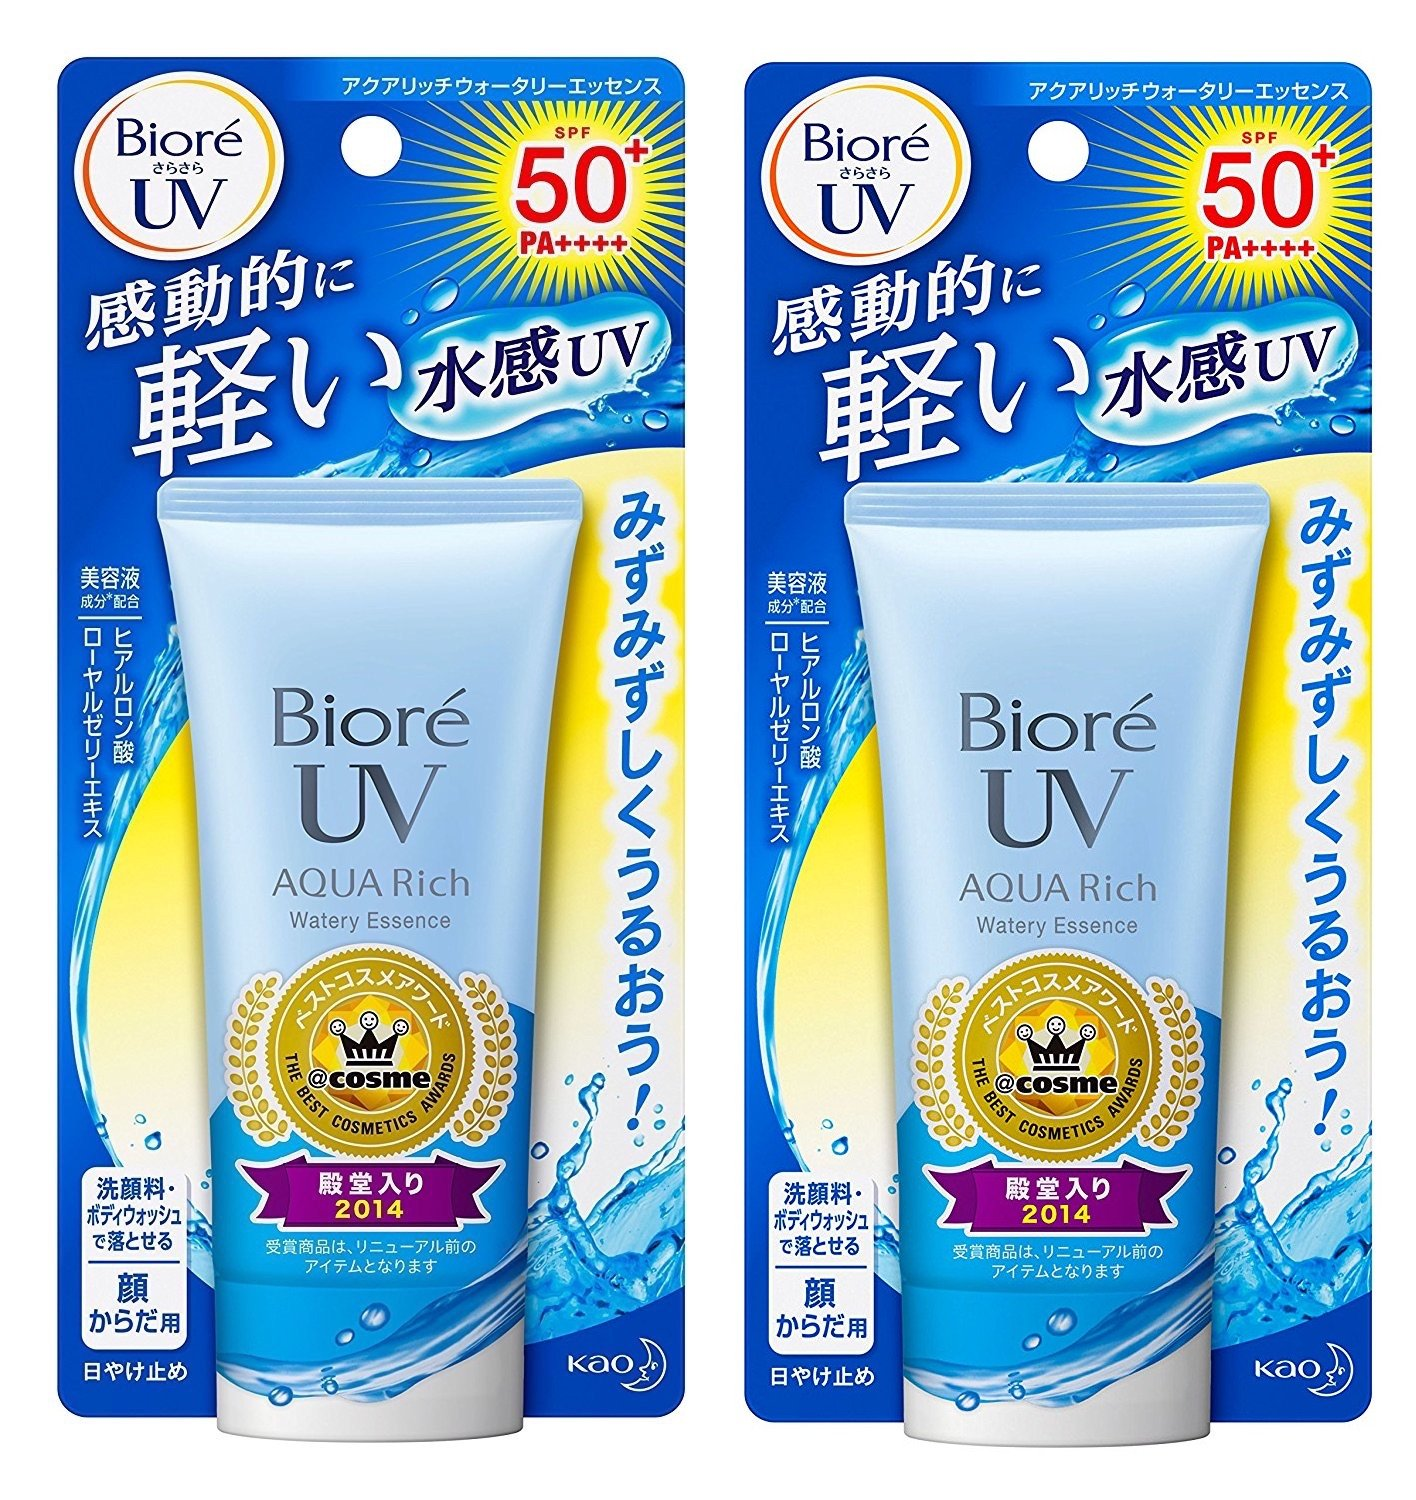 Biore Sarasara UV Aqua Rich Watery Essence Sunscreen SPF50+ PA+++ 50g (Pack of 2) Thailand